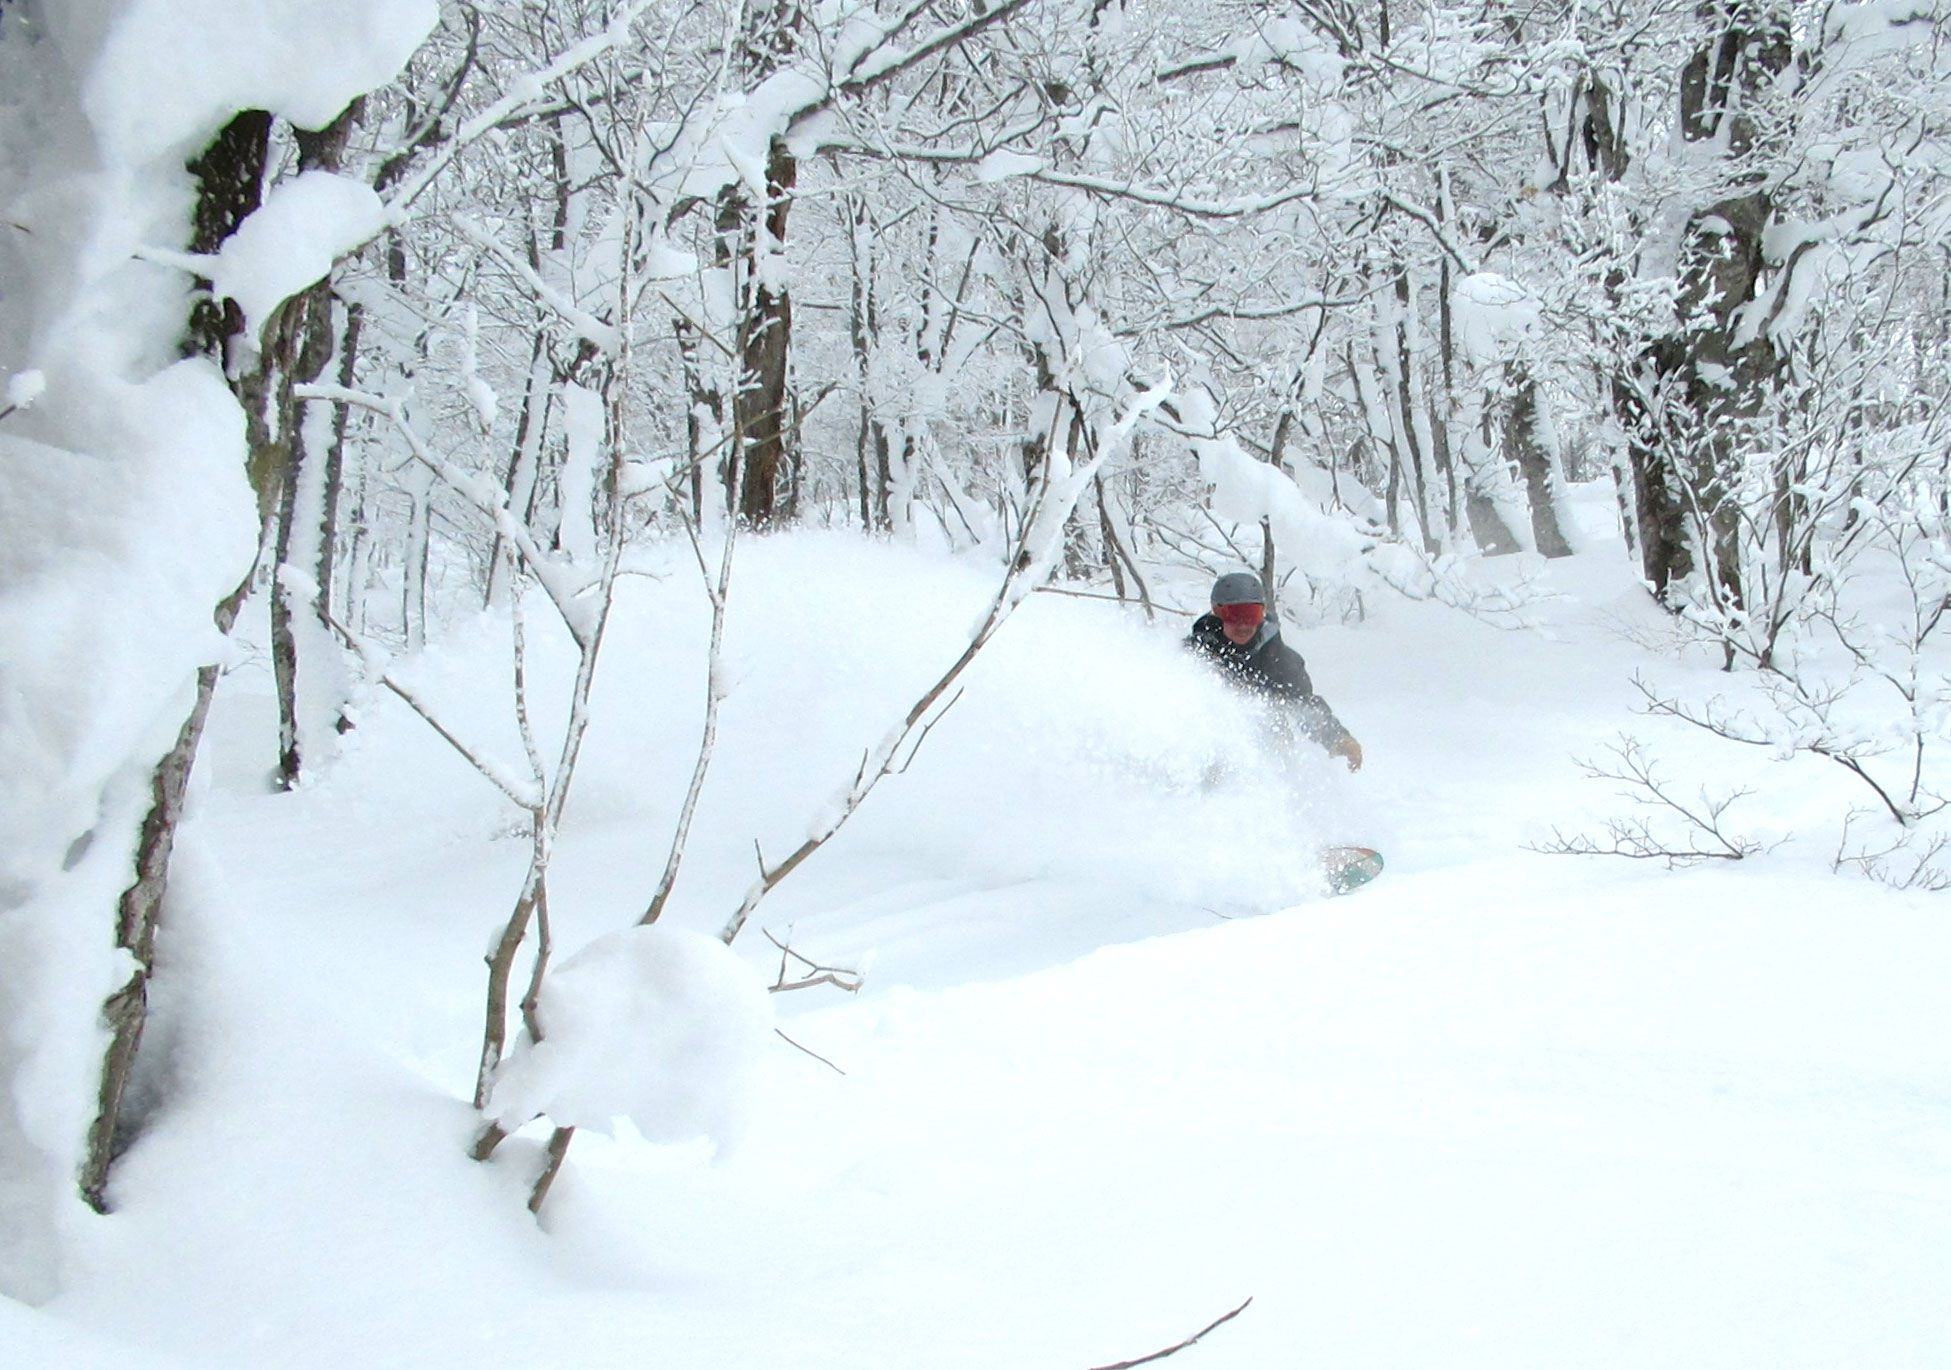 Our guide finding plenty of pow stashes